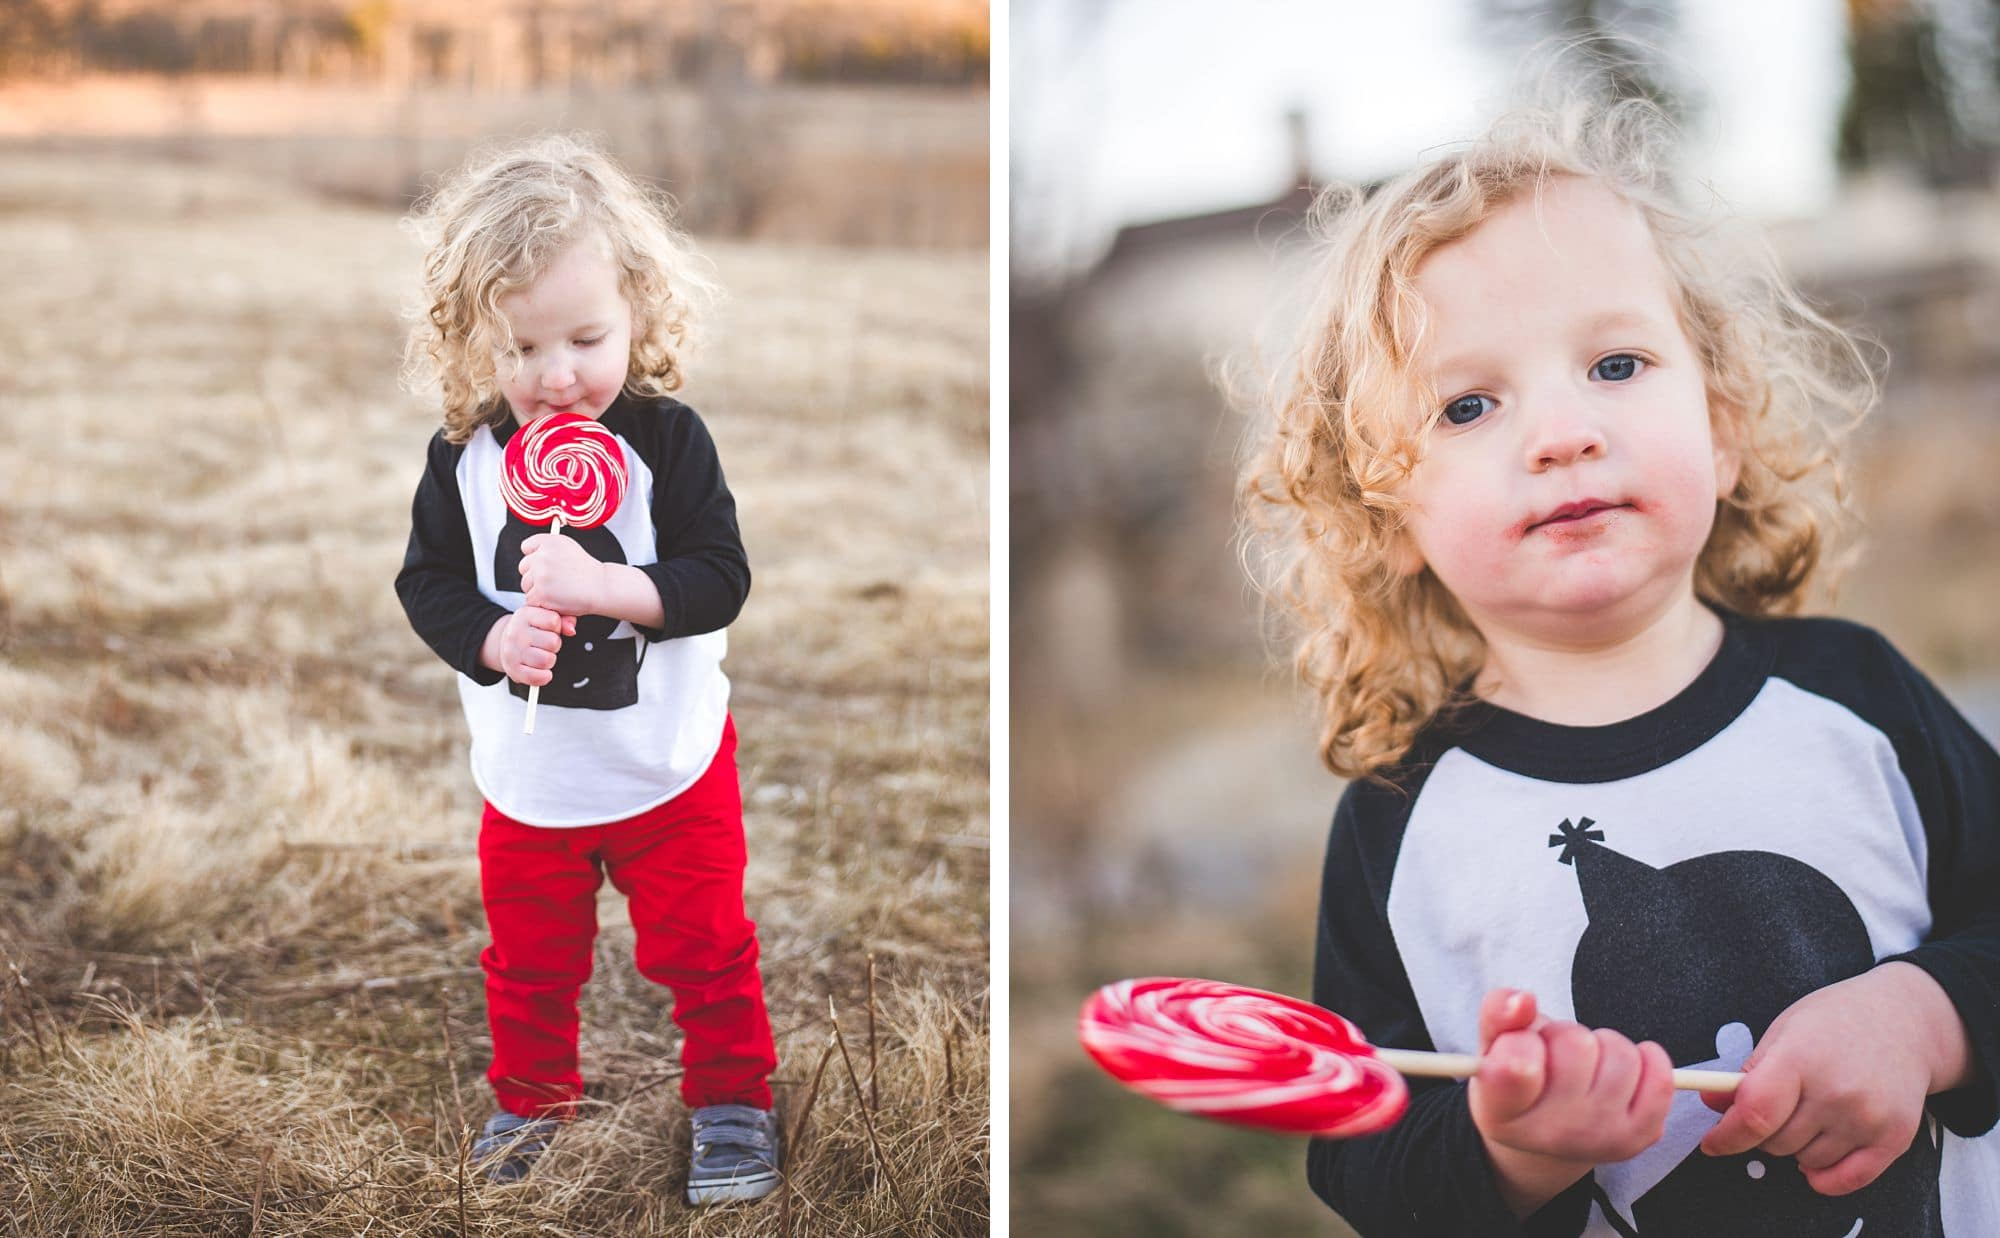 Young boy wearing red pants and a graphic tee enjoys a red lollipop